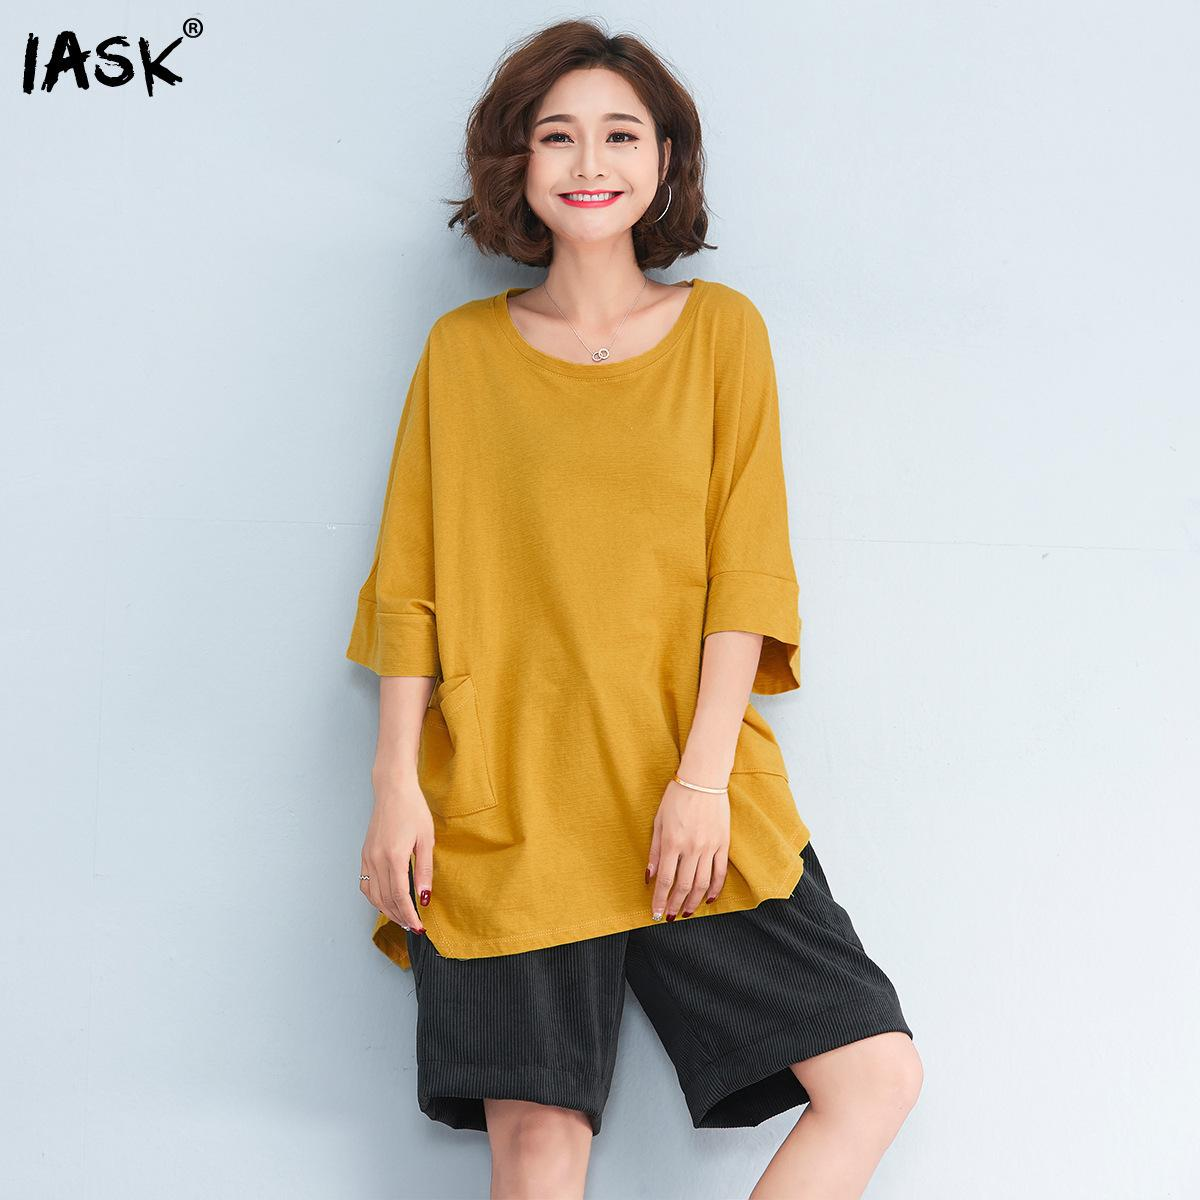 c7bf27996cbae SHENGPALAE 2018 New Summer Women Plus Size Tops Casual Oversized Loose  O-neck Batwing Sleeve Solid Yellow Female T-shirt QC245